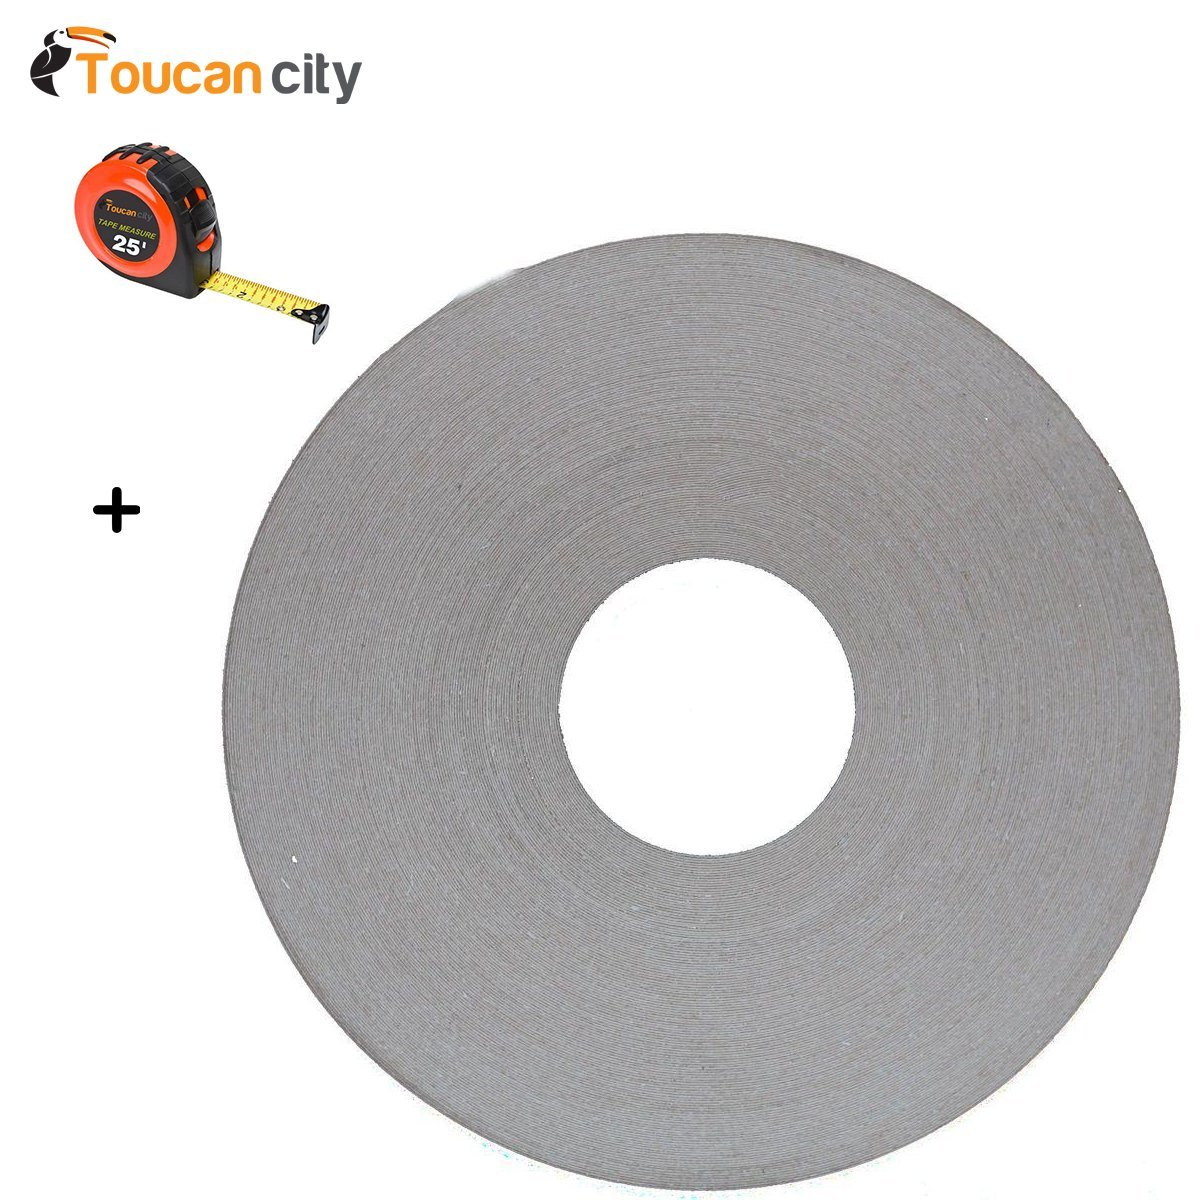 Toucan City Tape Measure and 13/16 in. x 250 ft. White Melamine Edgebanding with Hot Melt Adhesive 03white